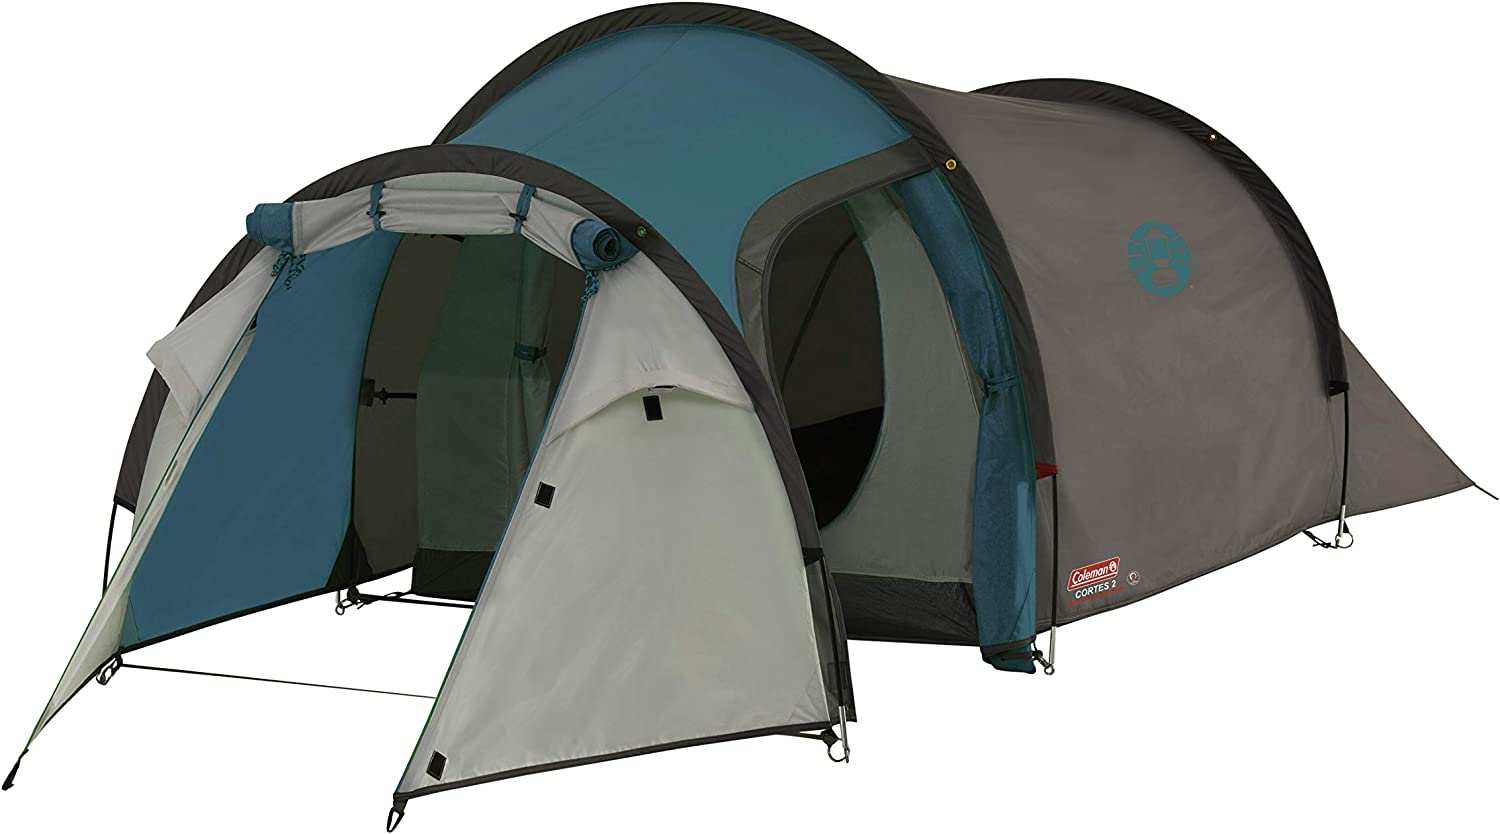 Coleman Cortes 2 Tent, 2 Man, 1 Bedroom Hiking, Absolutely Waterproof Lightweight Camping Tent with Sewn in Groundsheet